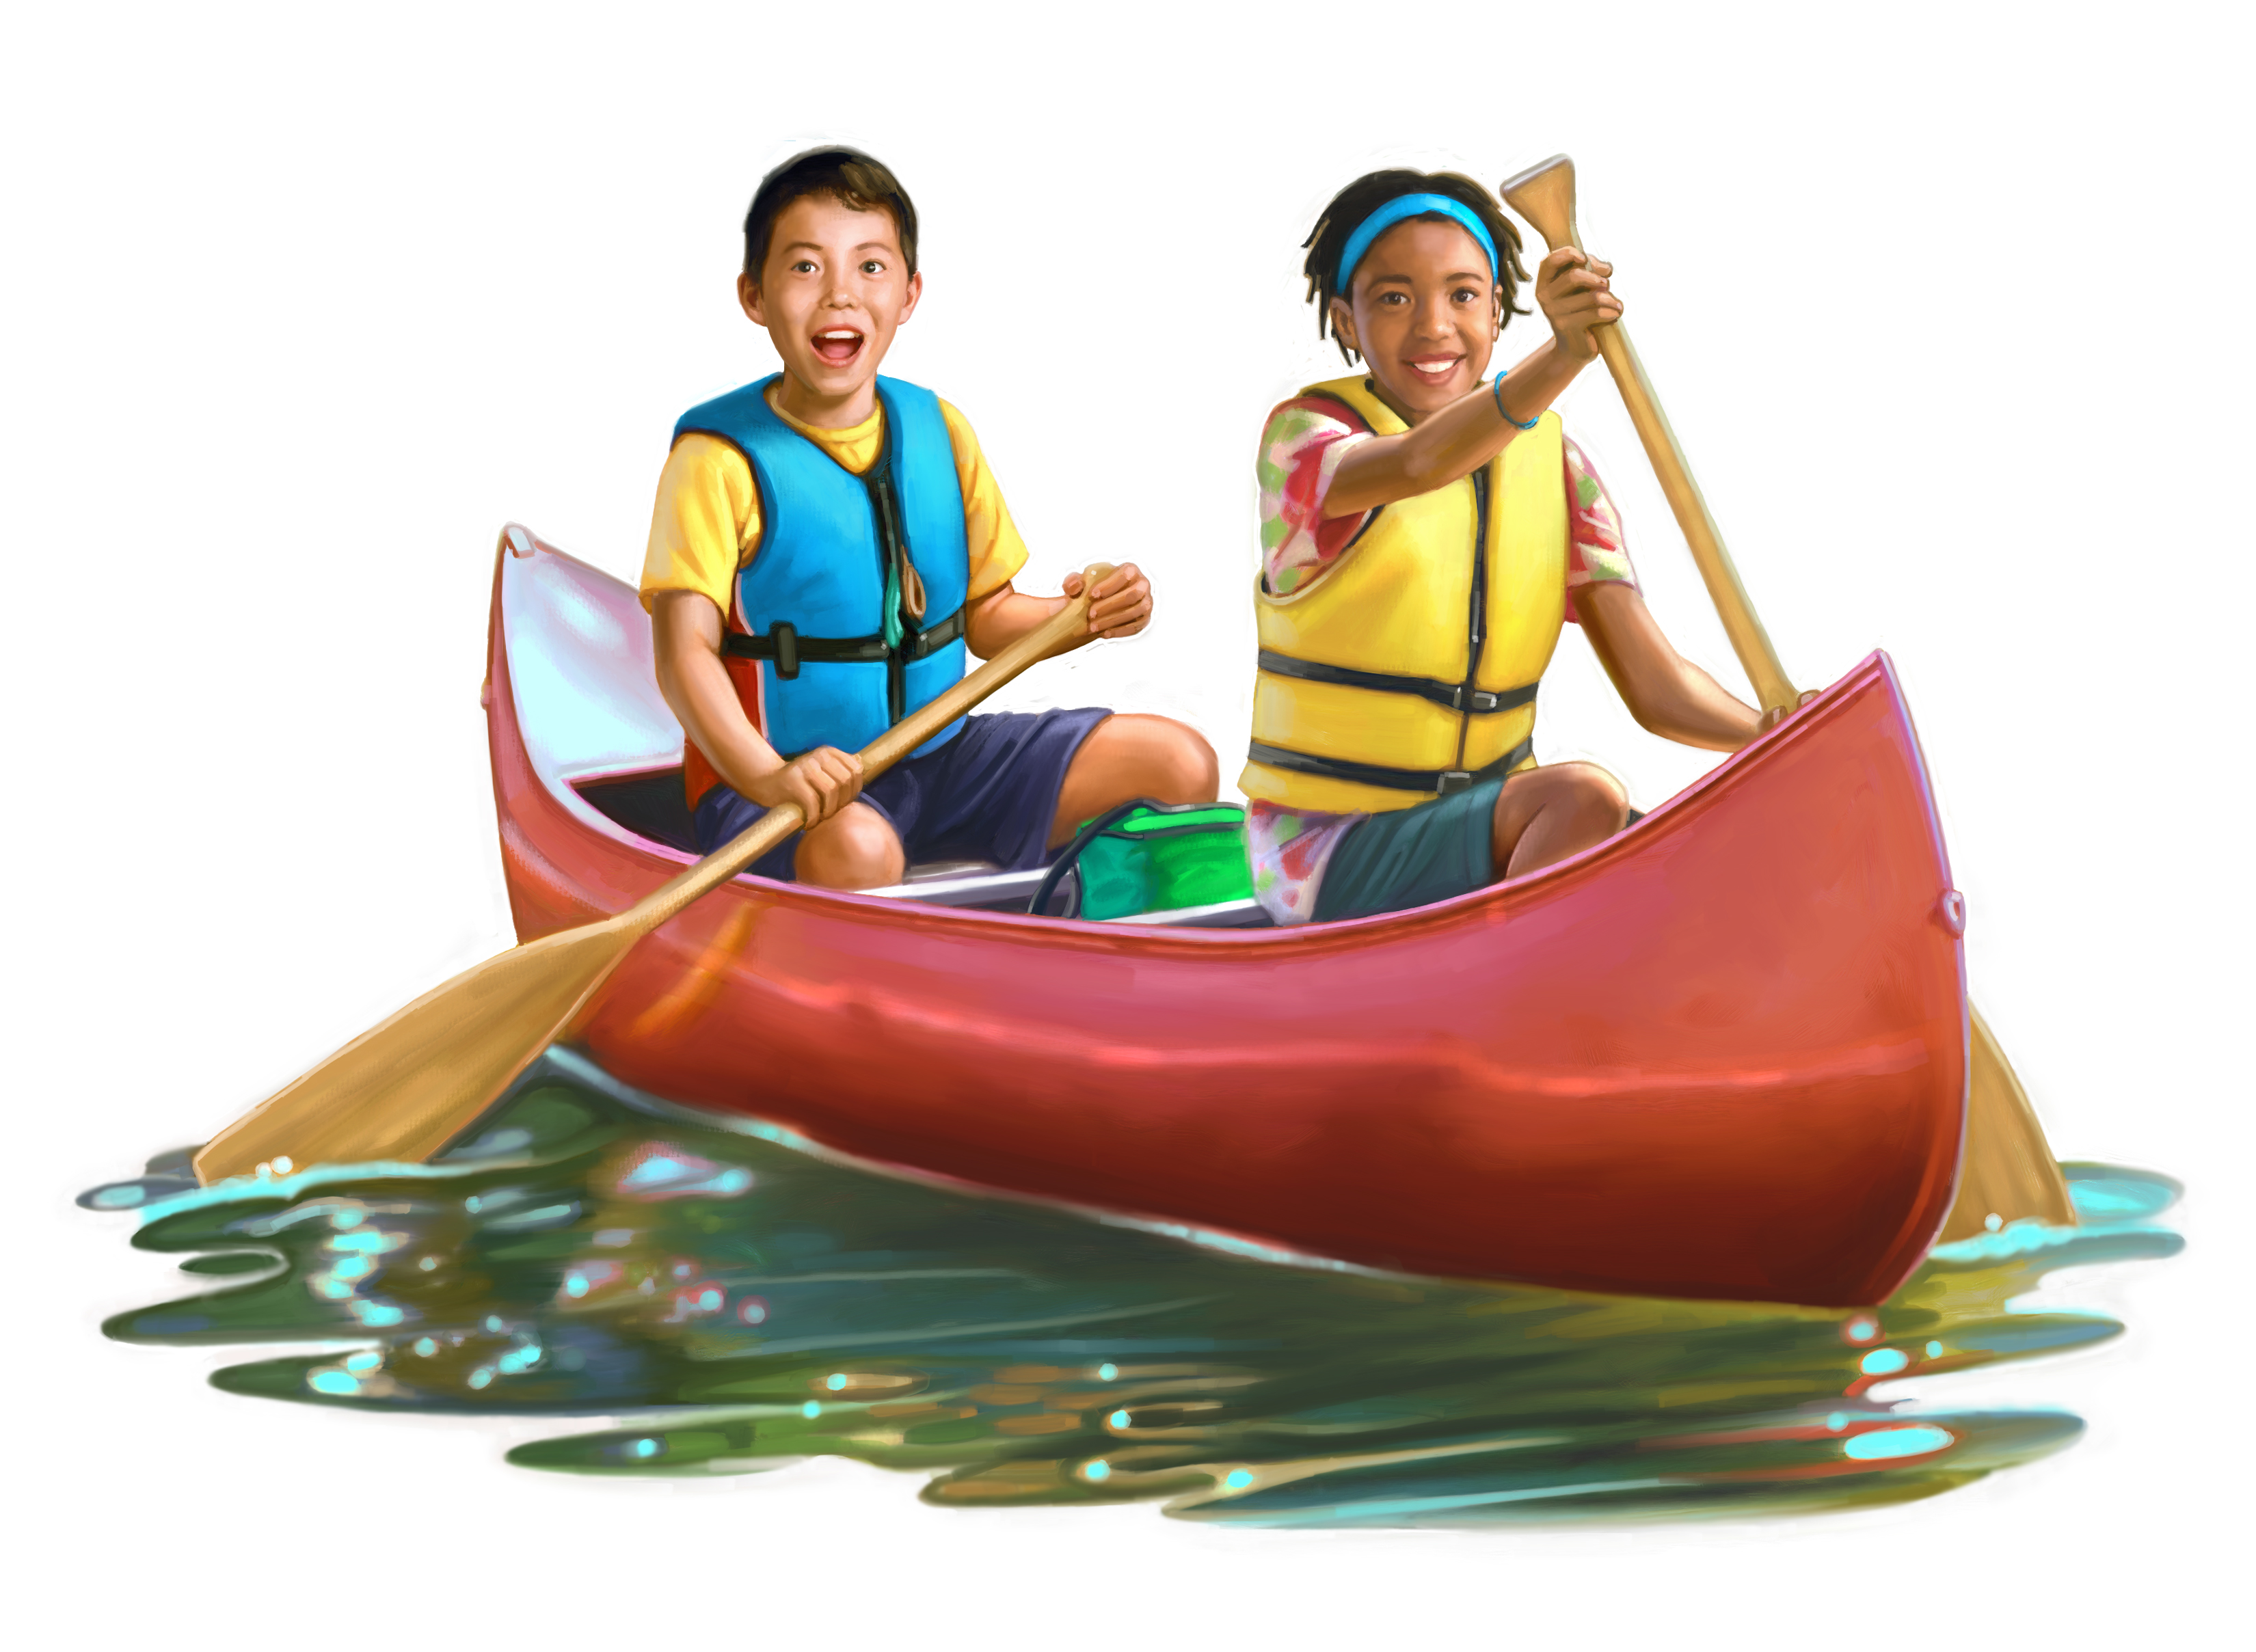 Free Canoe Camping Cliparts, Download Free Clip Art, Free.